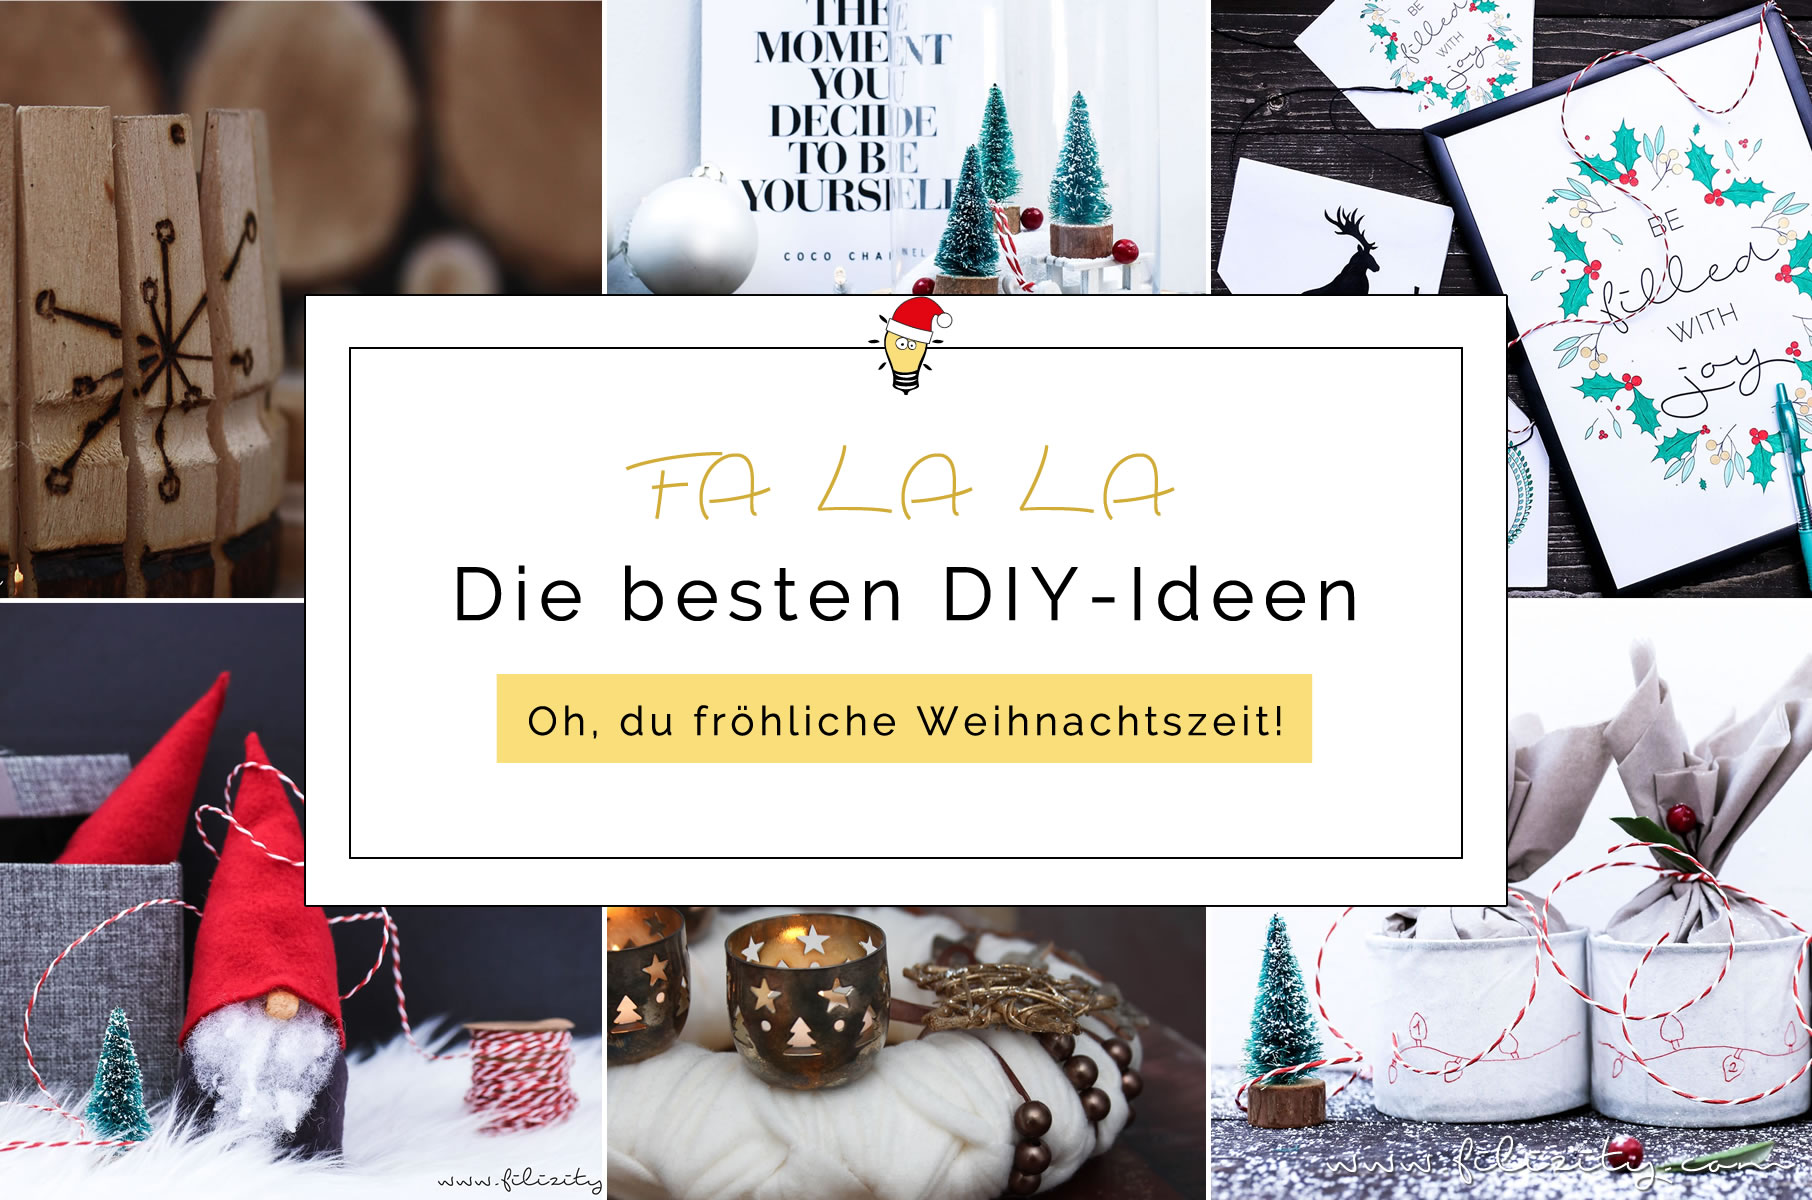 die besten diy ideen f r weihnachten diy. Black Bedroom Furniture Sets. Home Design Ideas